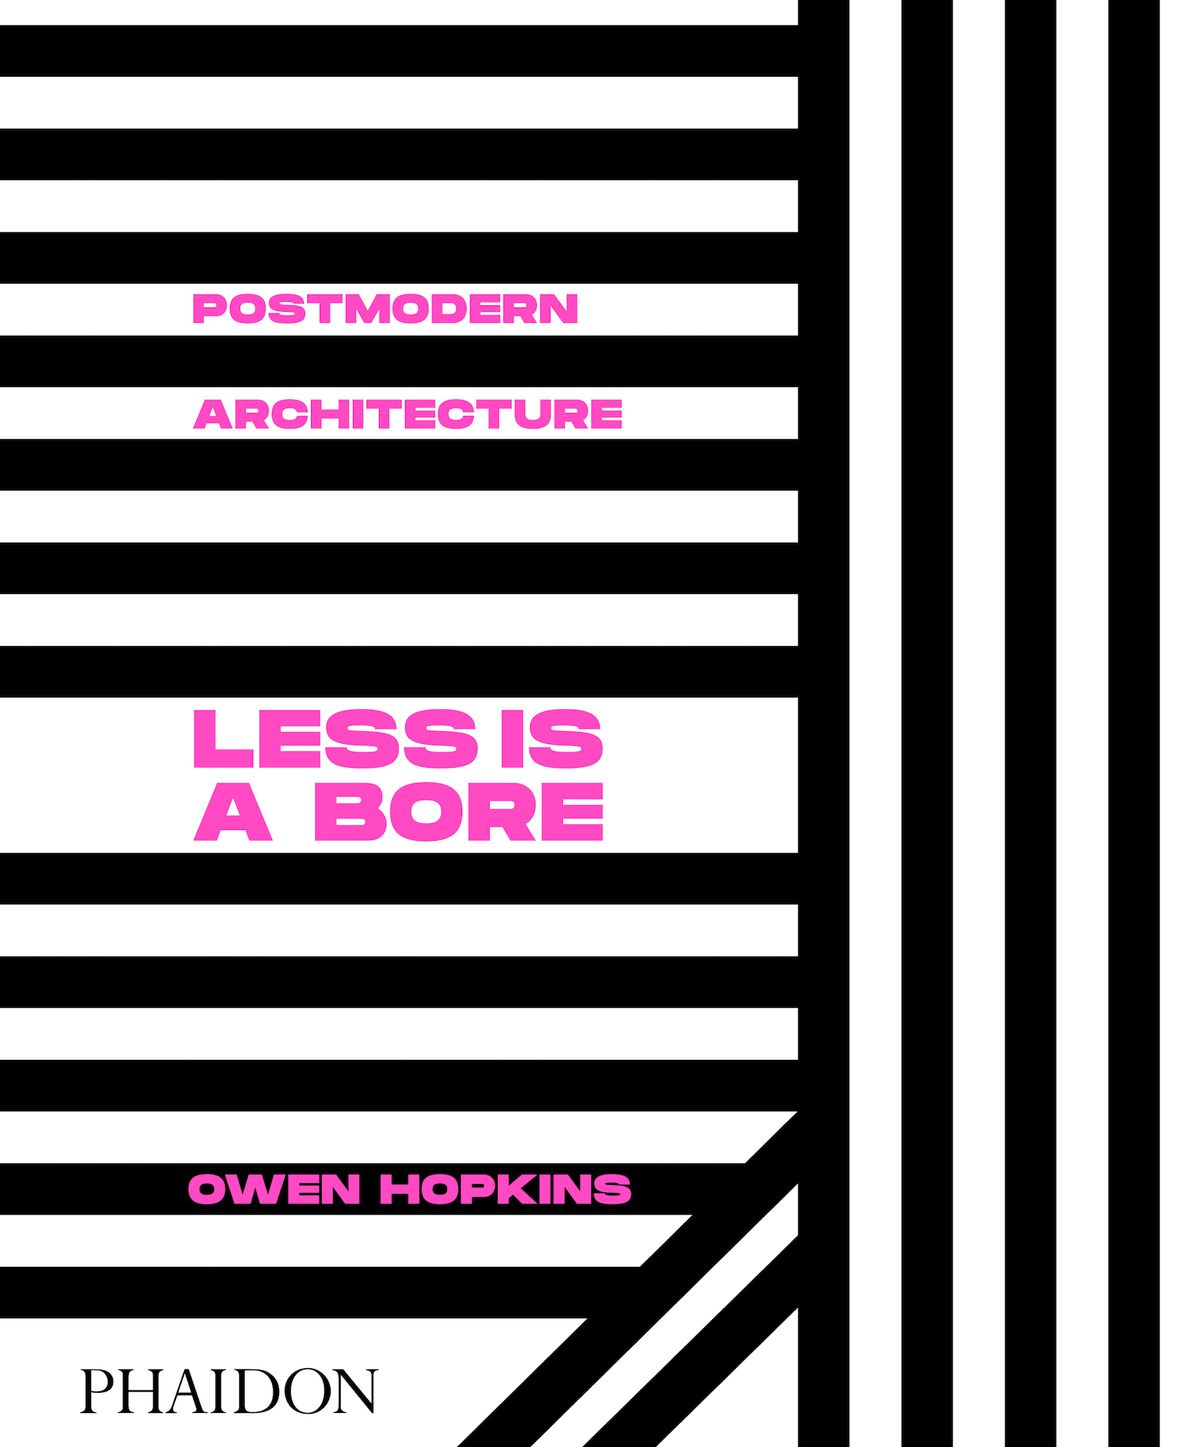 Book cover with black lines and pink text.